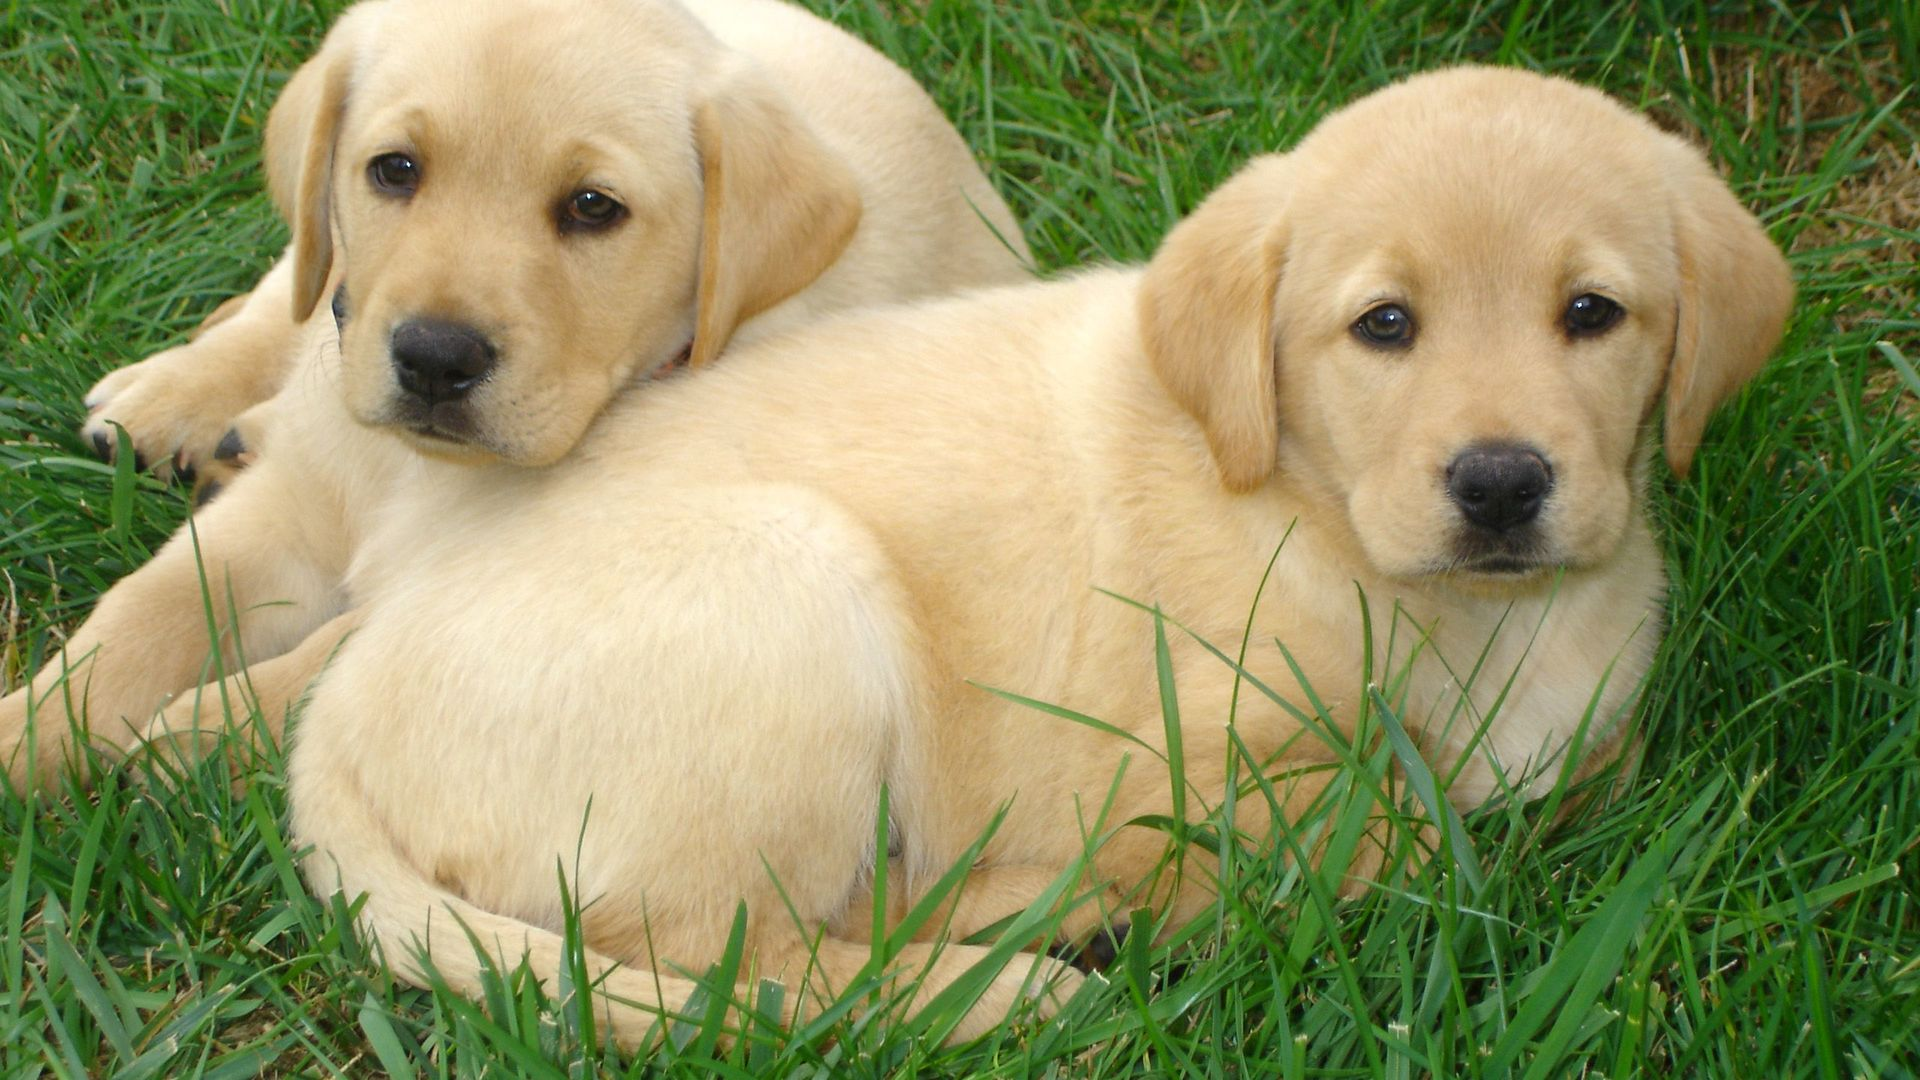 labrador retriever puppies free hd wallpapers - hd wallpaper